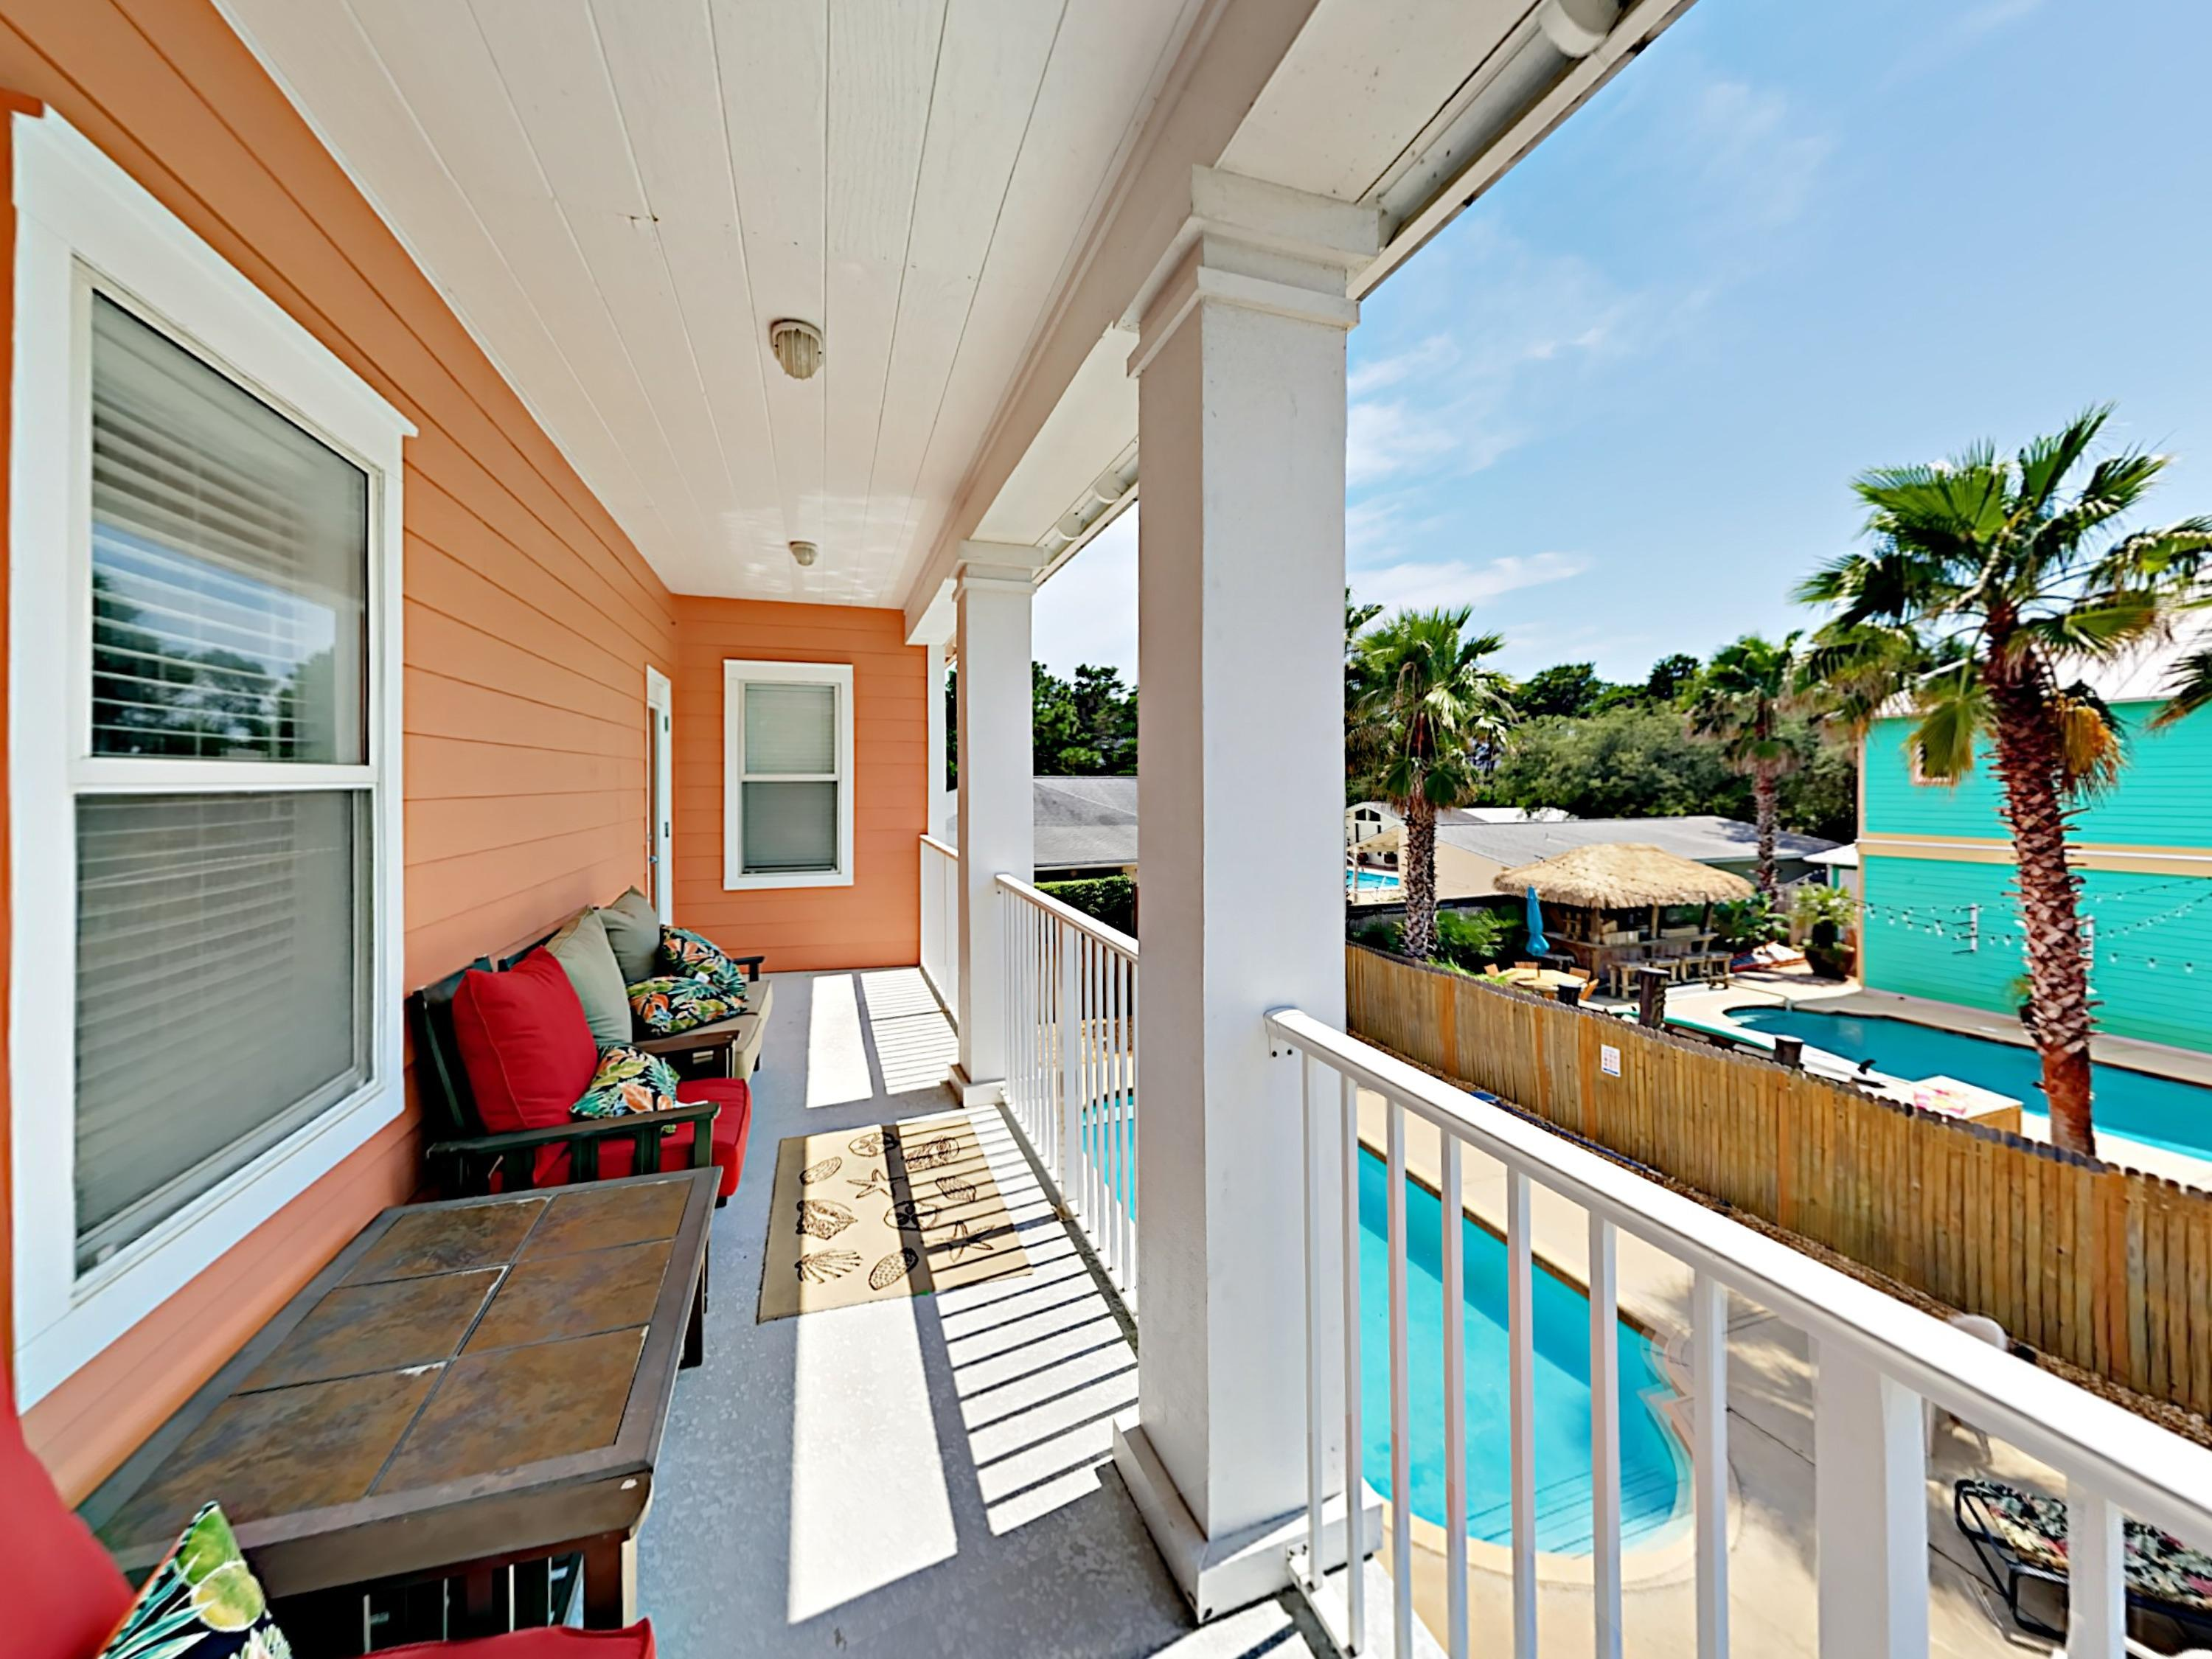 Relax on the covered, wraparound balcony overlooking the backyard and pool.